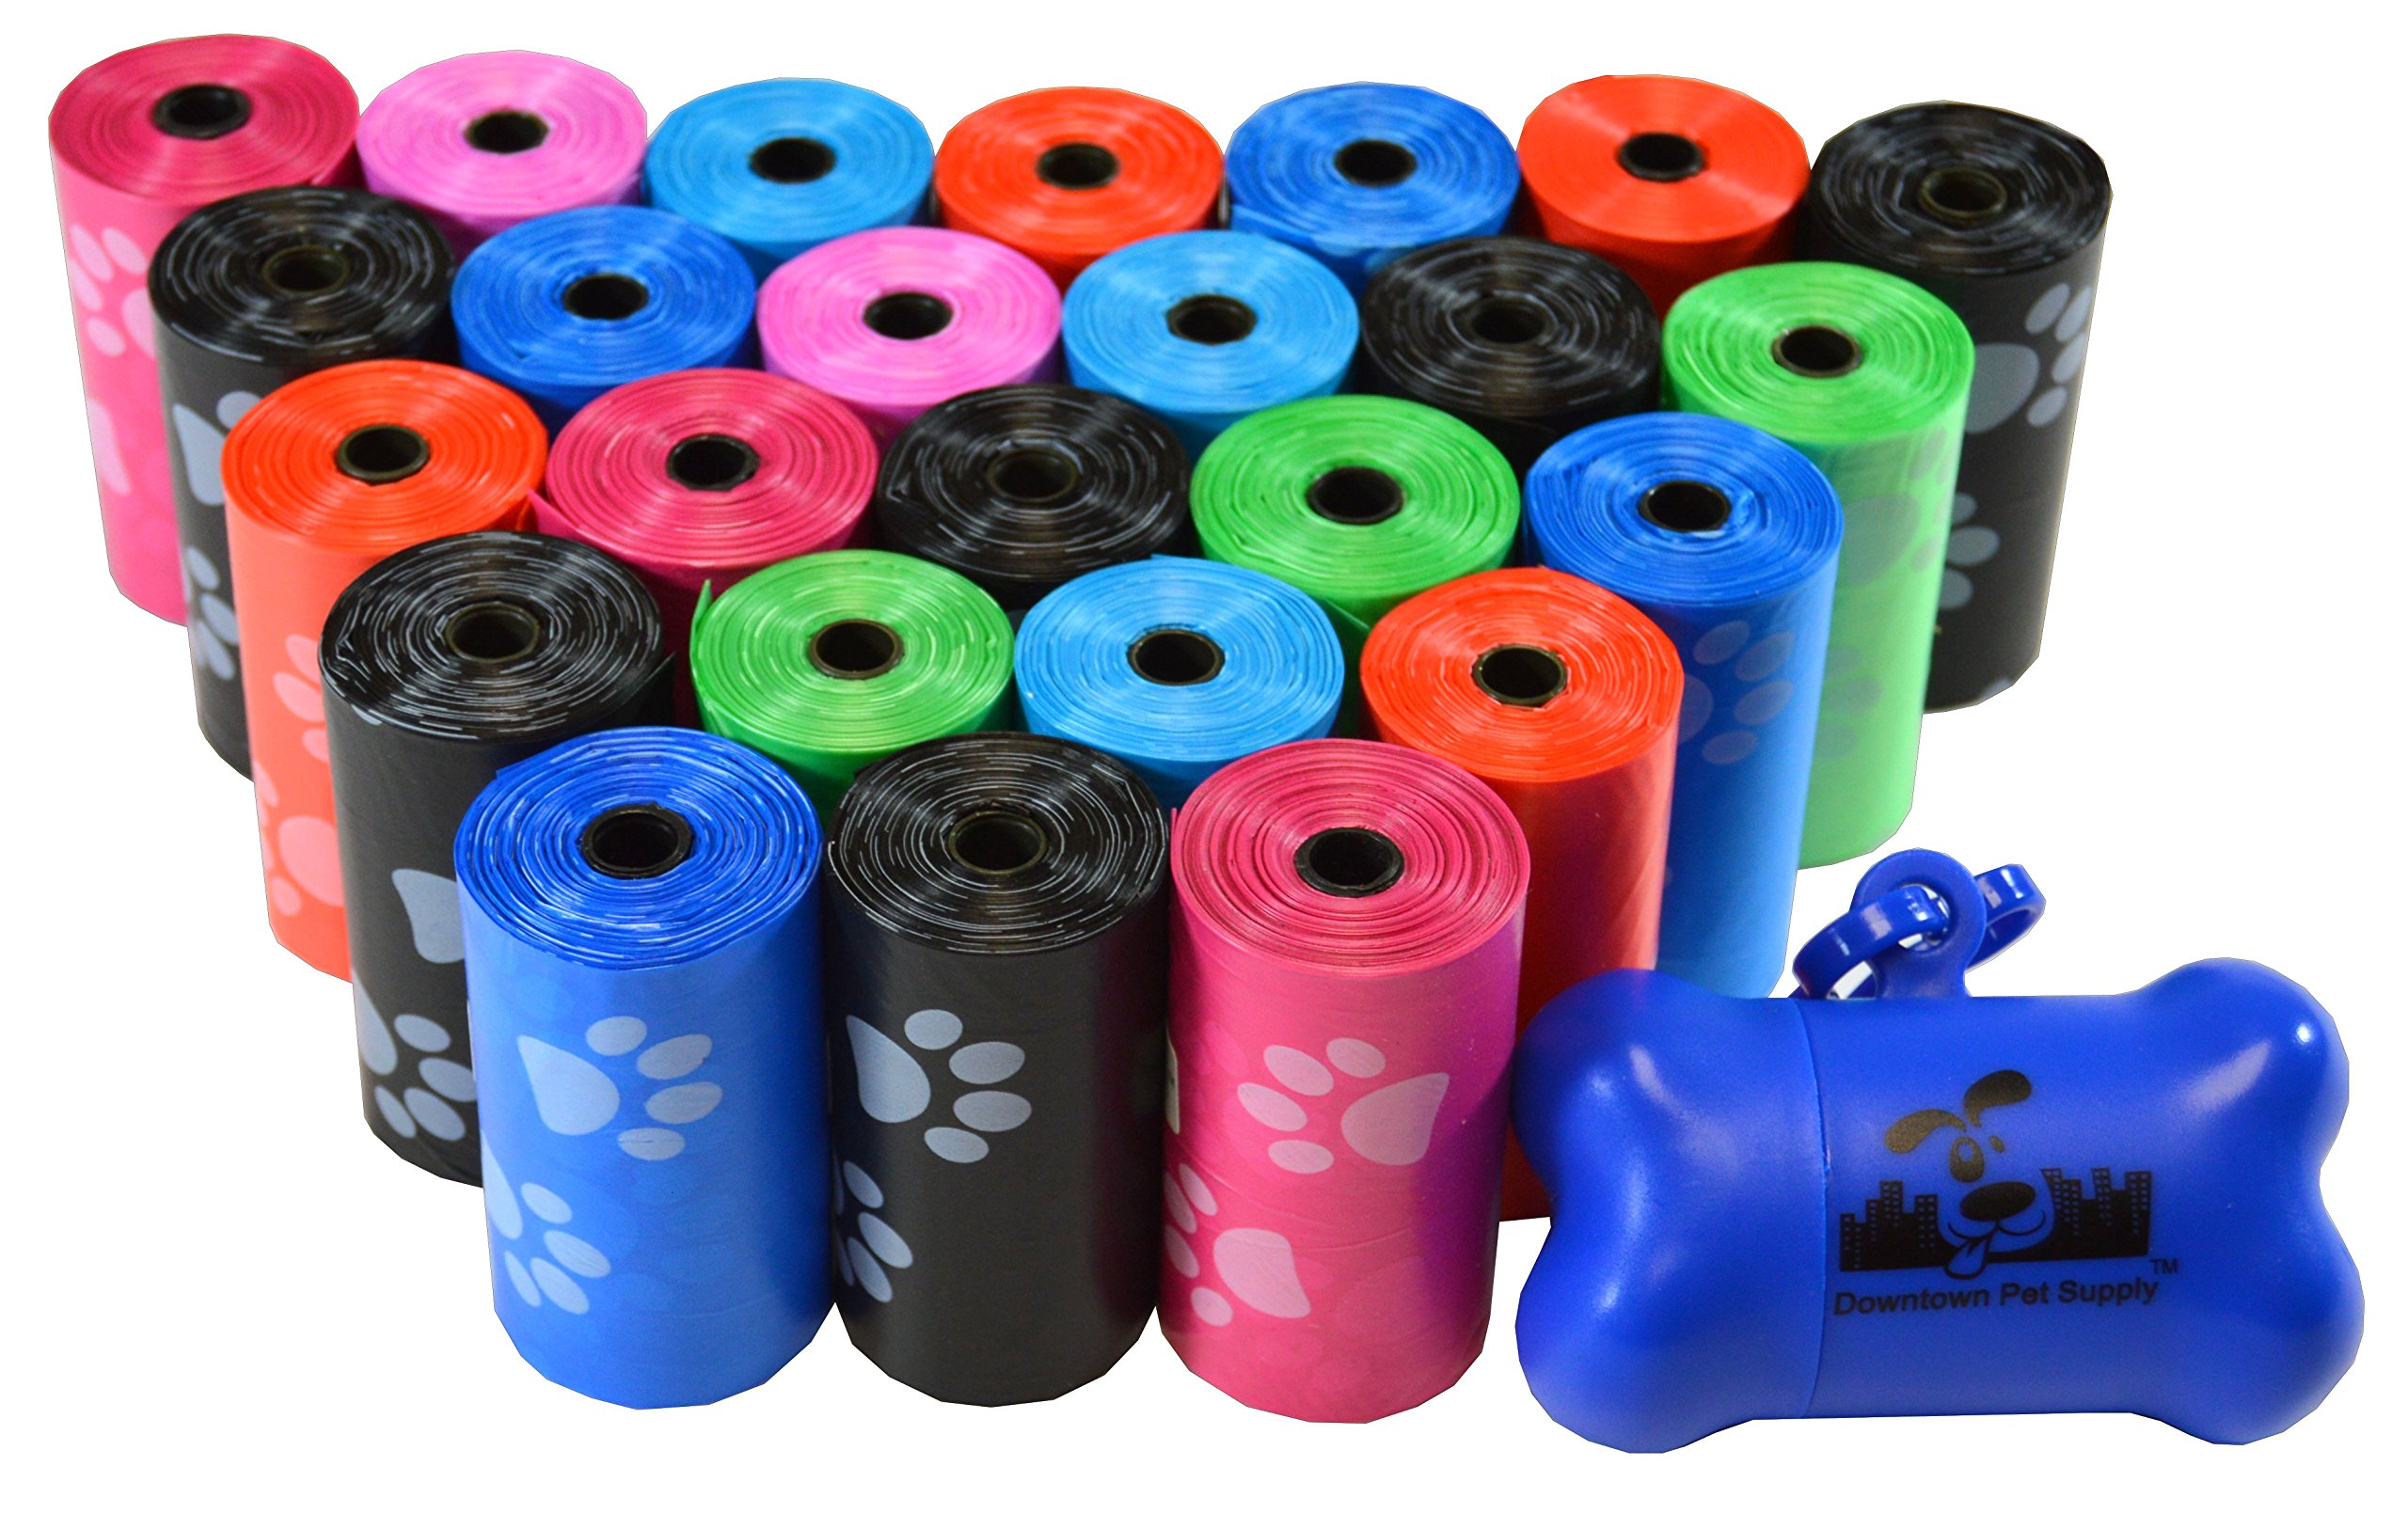 Downtown Pet Supply 500 Pet Waste Bags, Dog Waste Bags, Bulk Poop Bags on a roll, Clean up poop bag refills - (Color: Rainbow of Colors with Paw Prints) + FREE Bone Dispenser, by